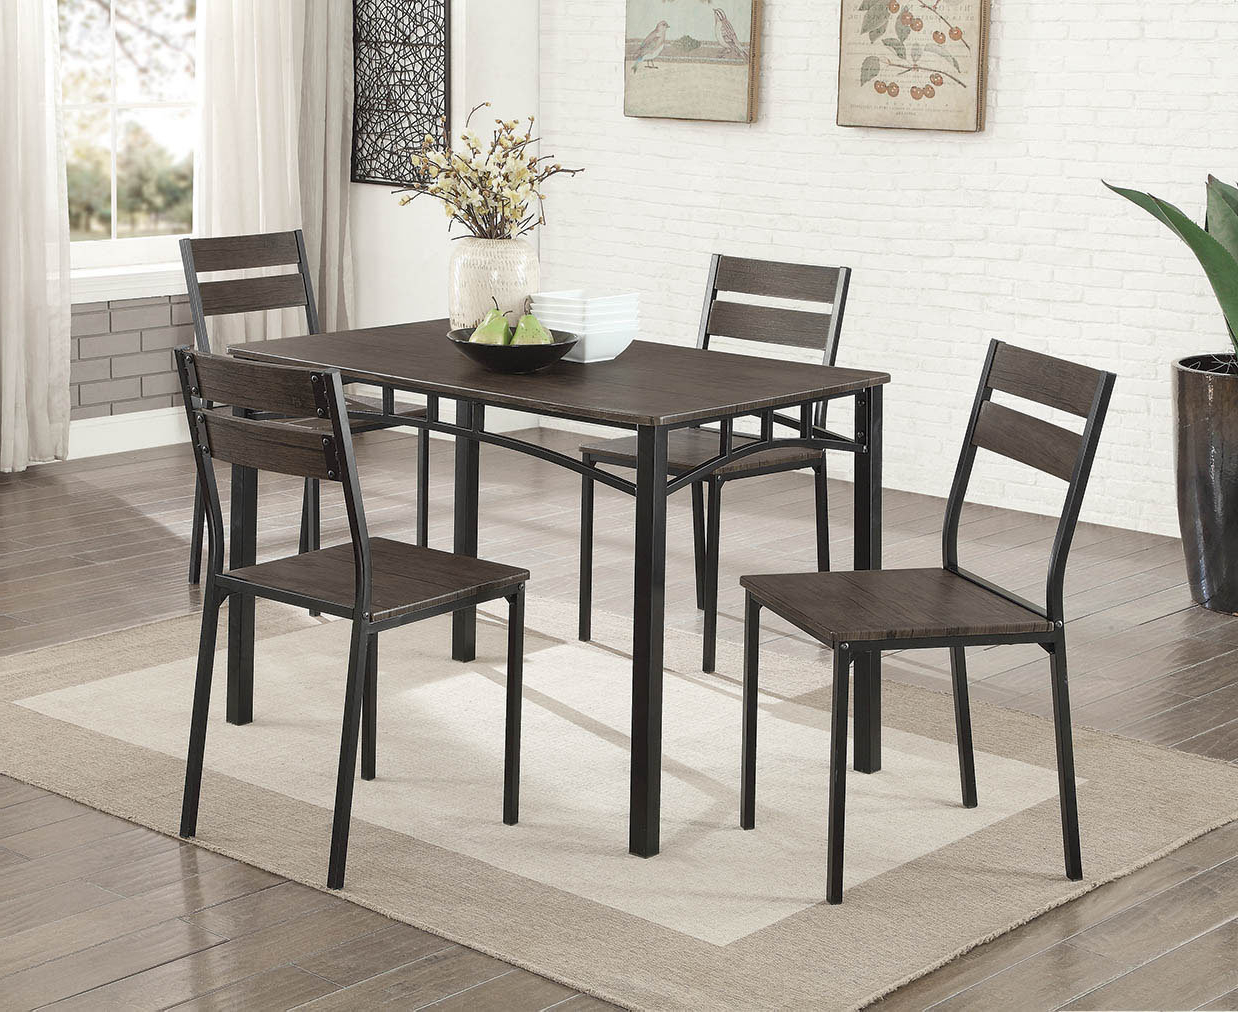 Tejeda 5 Piece Dining Sets Intended For 2017 Autberry 5 Piece Dining Set (View 14 of 20)